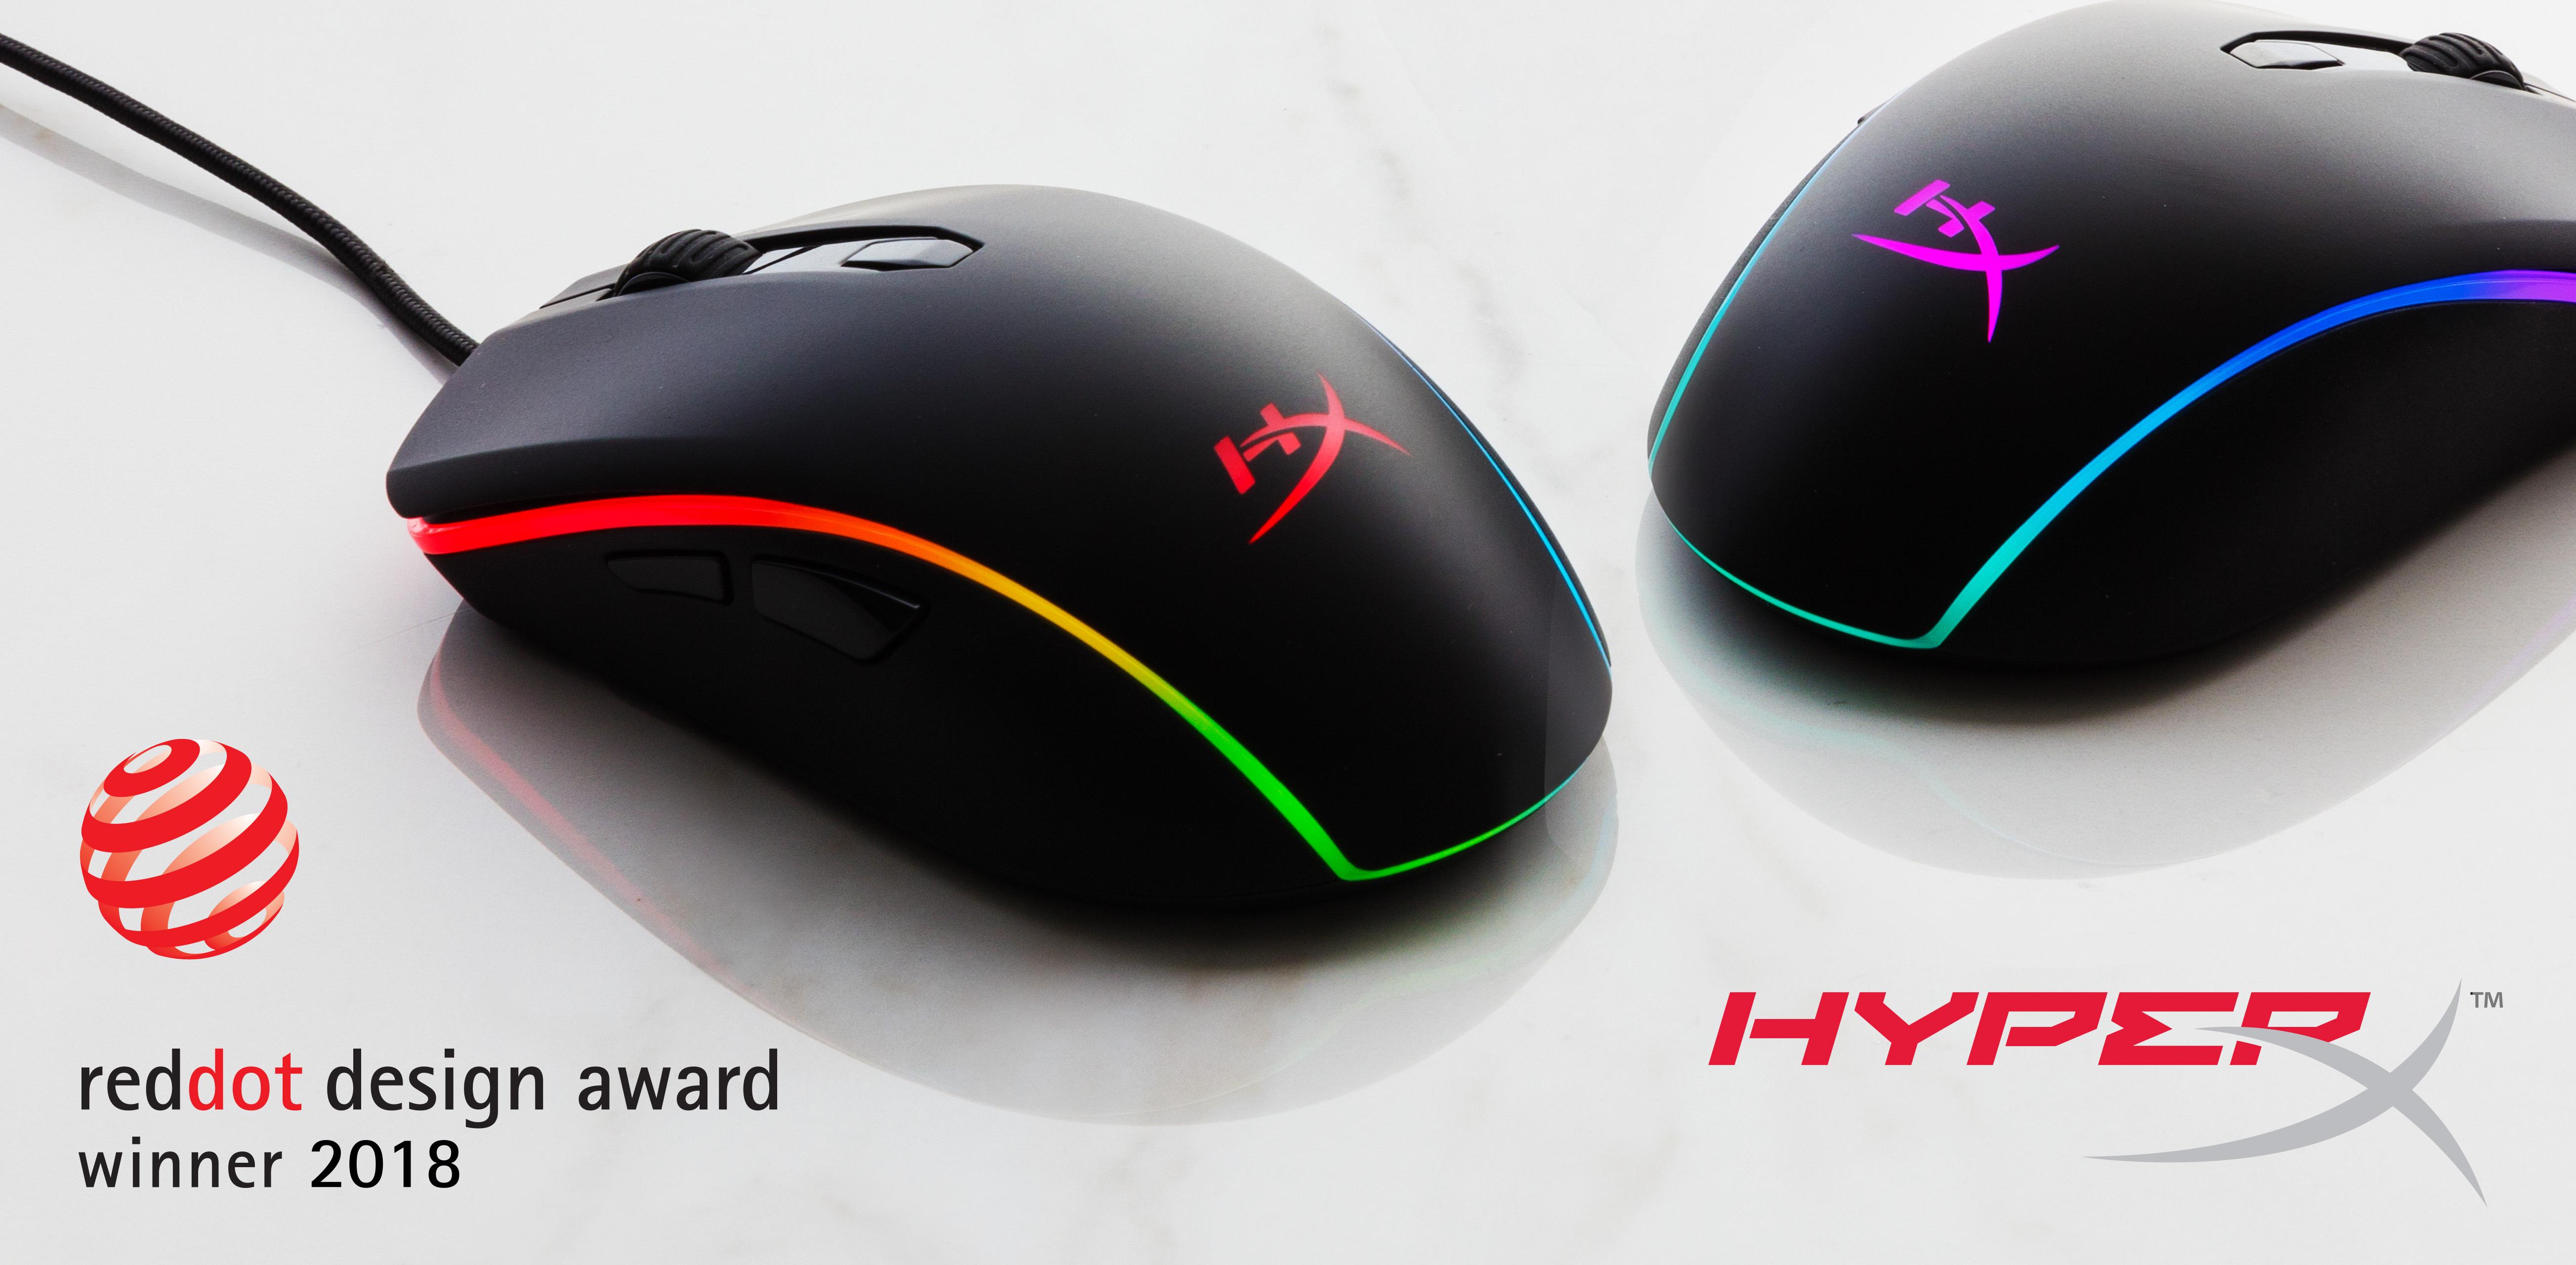 b7ef241de65 HyperX Ships New Pulsefire Surge Gaming Mouse with RGB Lighting ...